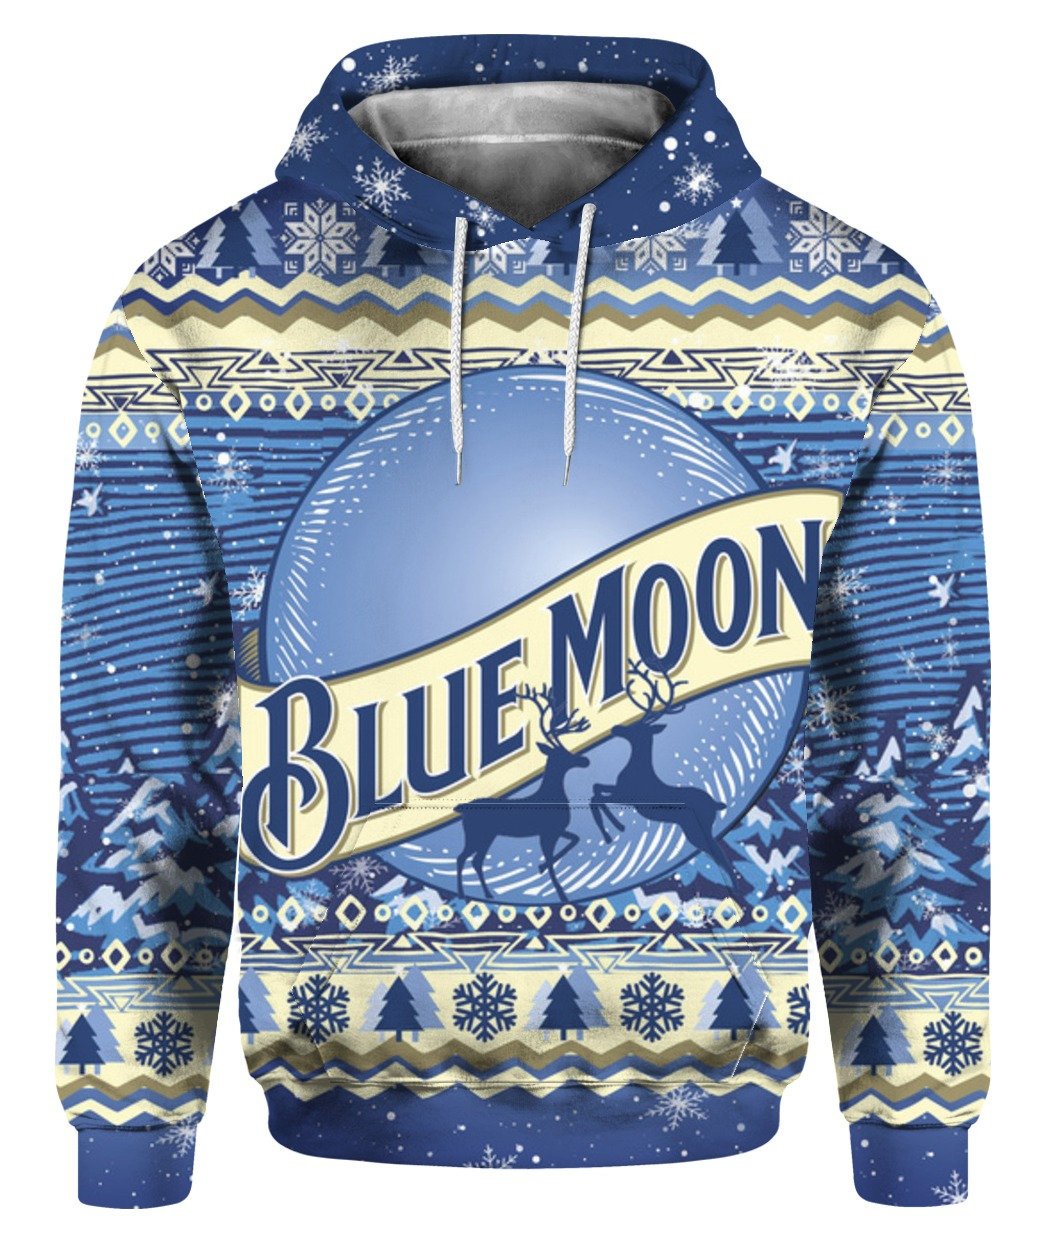 Blue moon beer bottle full printing ugly christmas sweater - maria